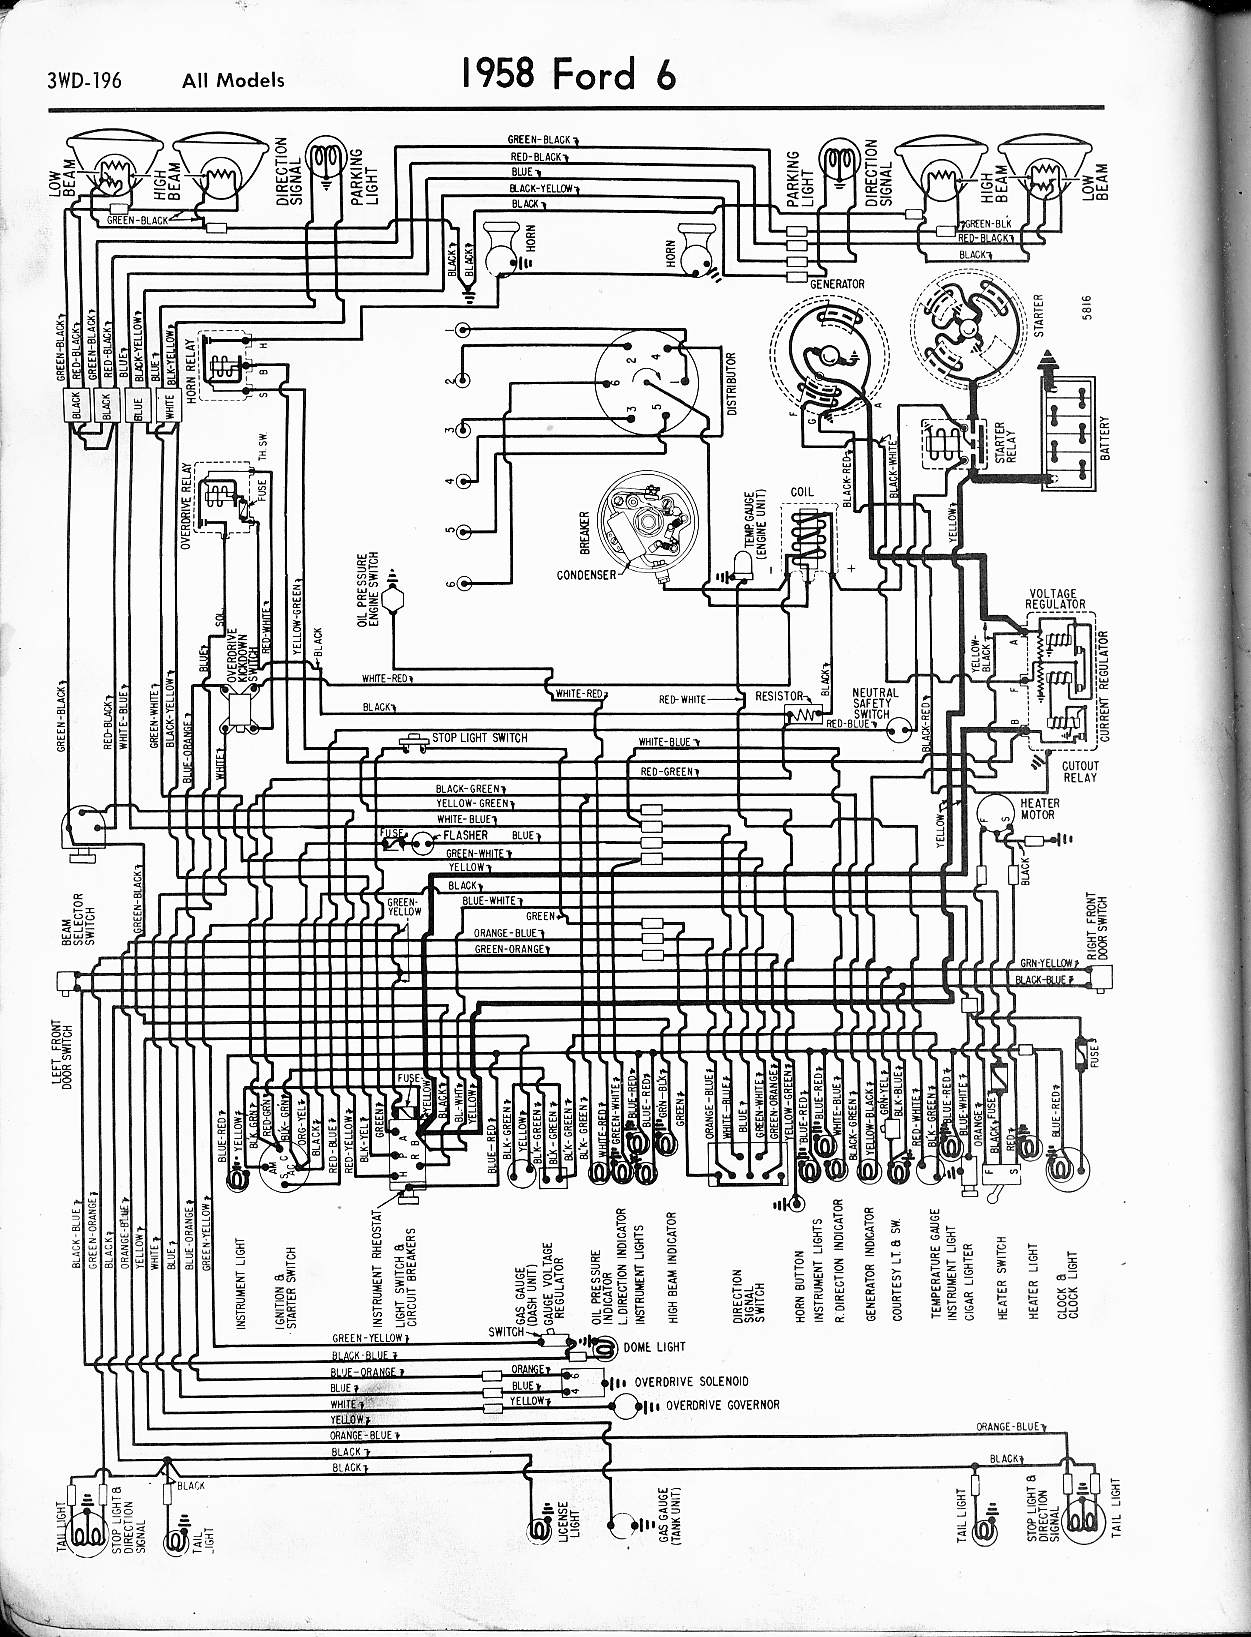 hight resolution of 57 65 ford wiring diagrams 1977 ford f150 wiring diagram 1958 6 cyl all models